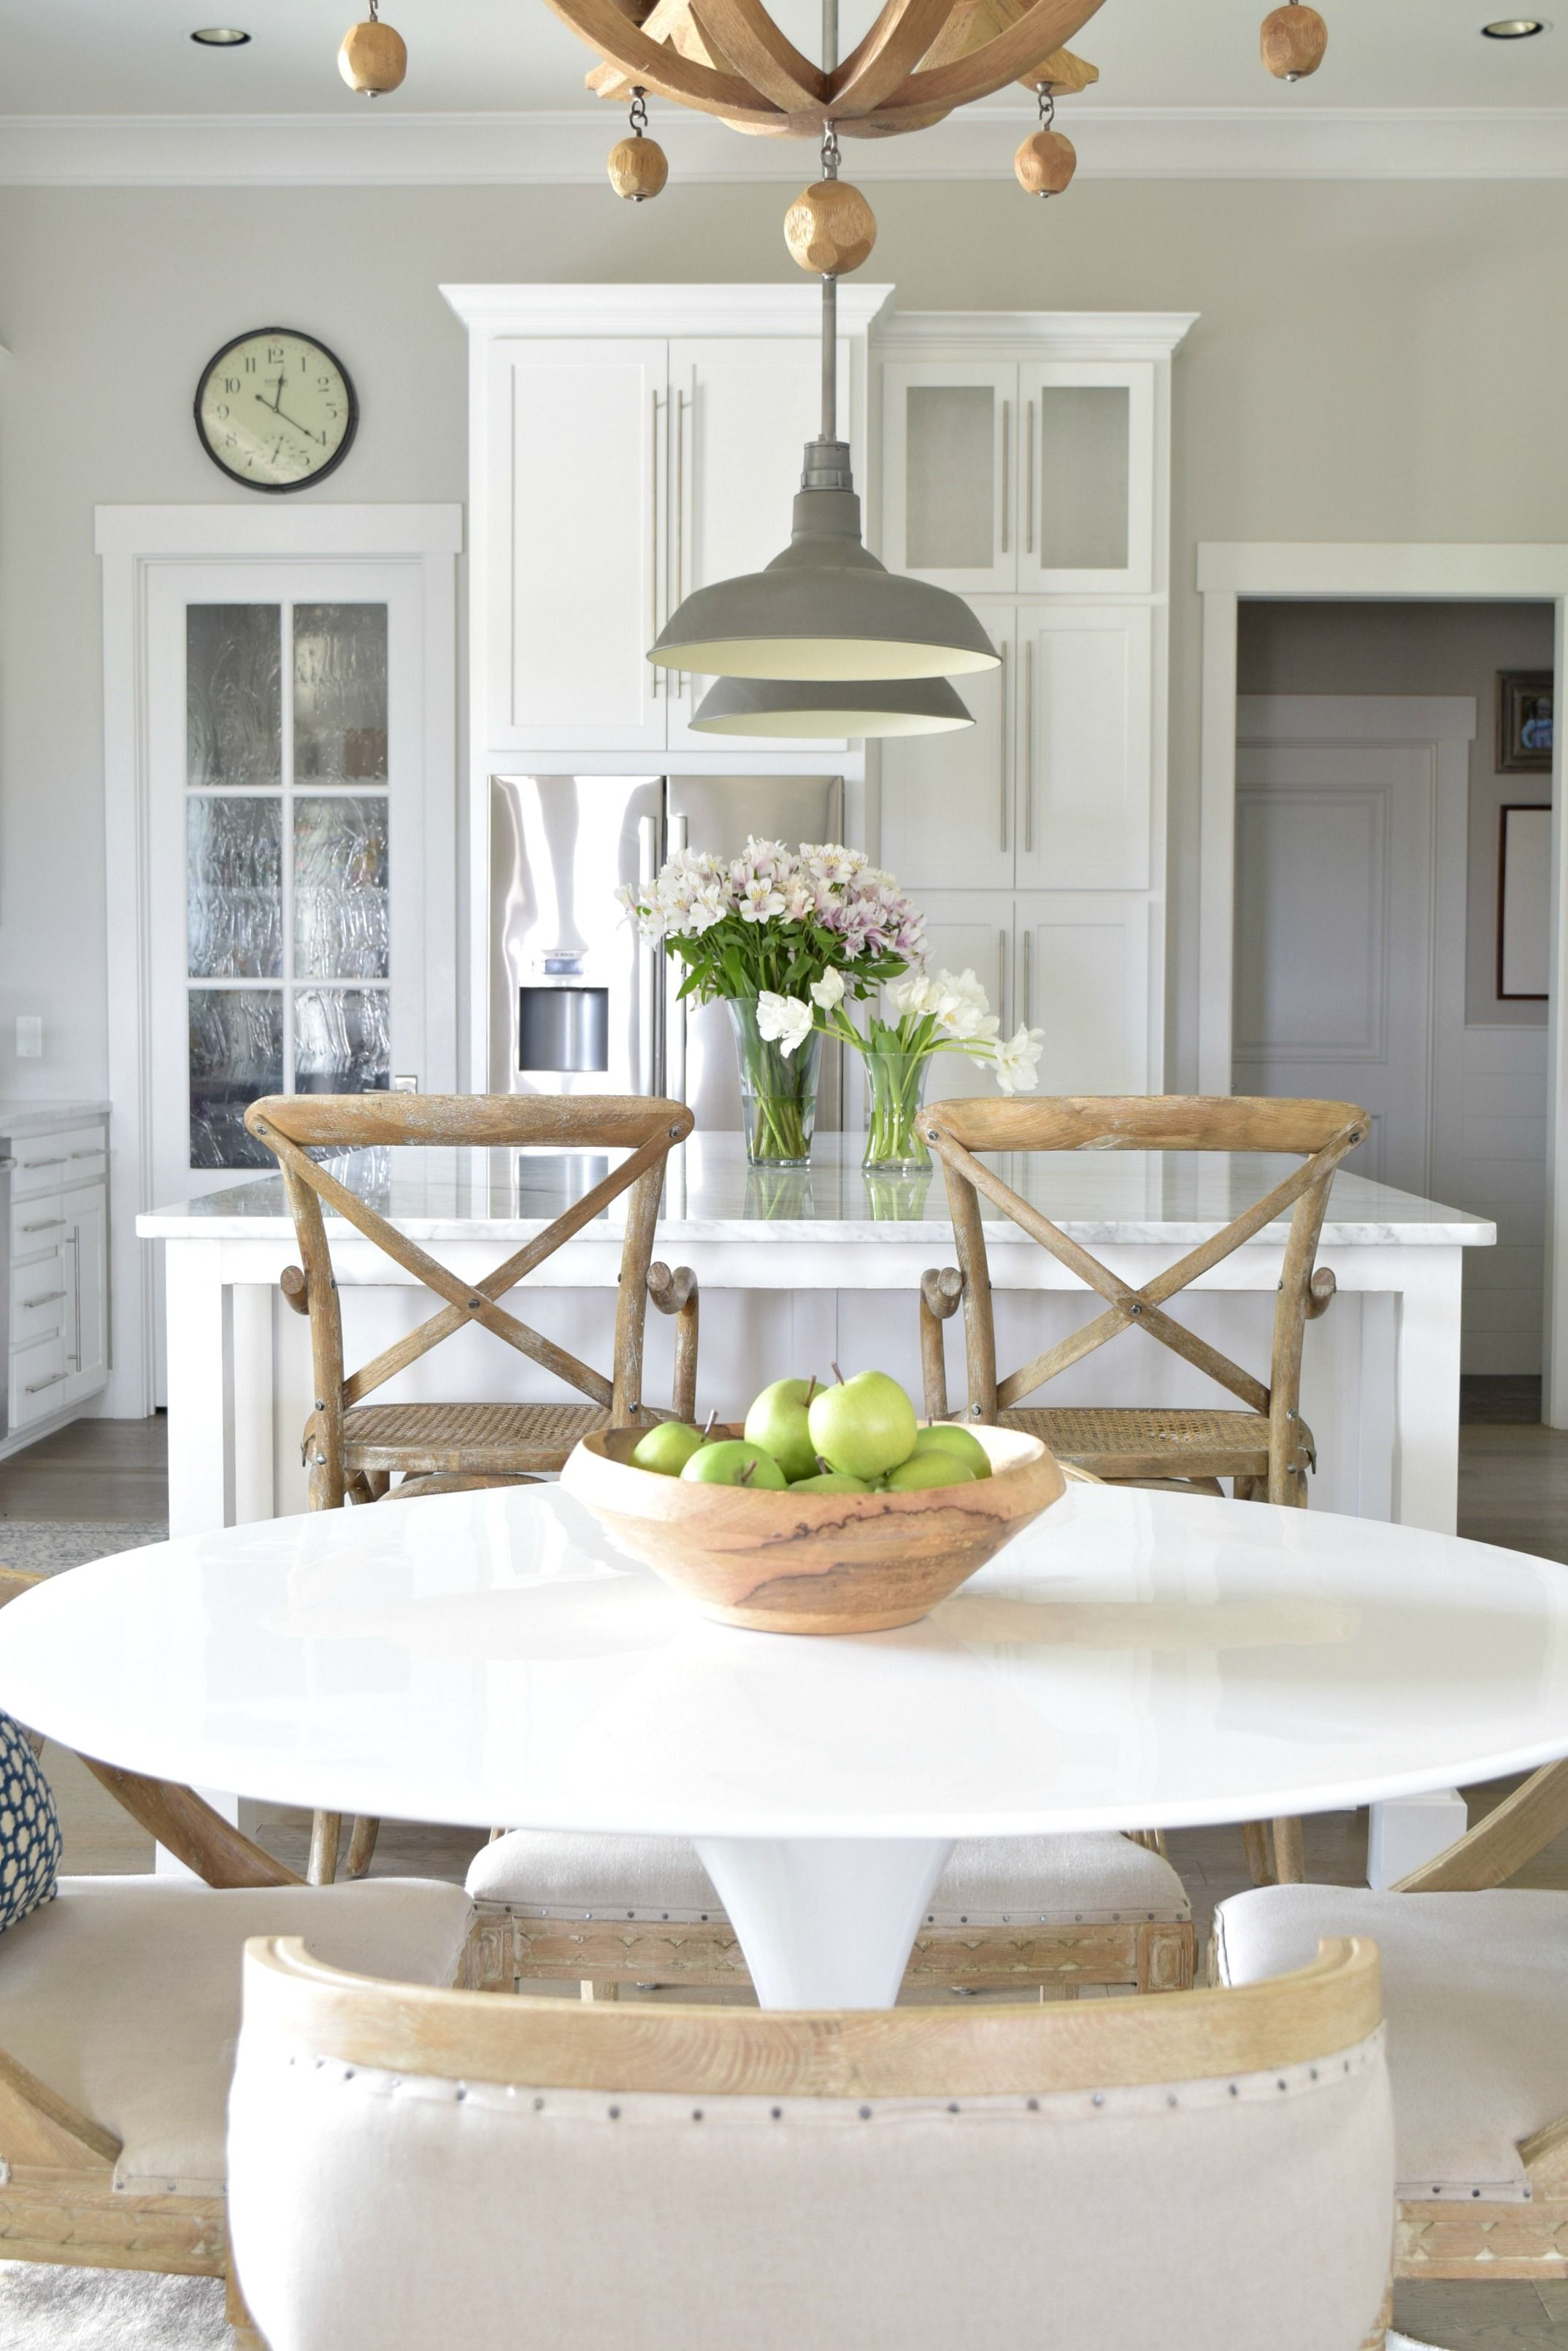 White Kitchen With Rustic Wood Furniture Accents Tulip Table